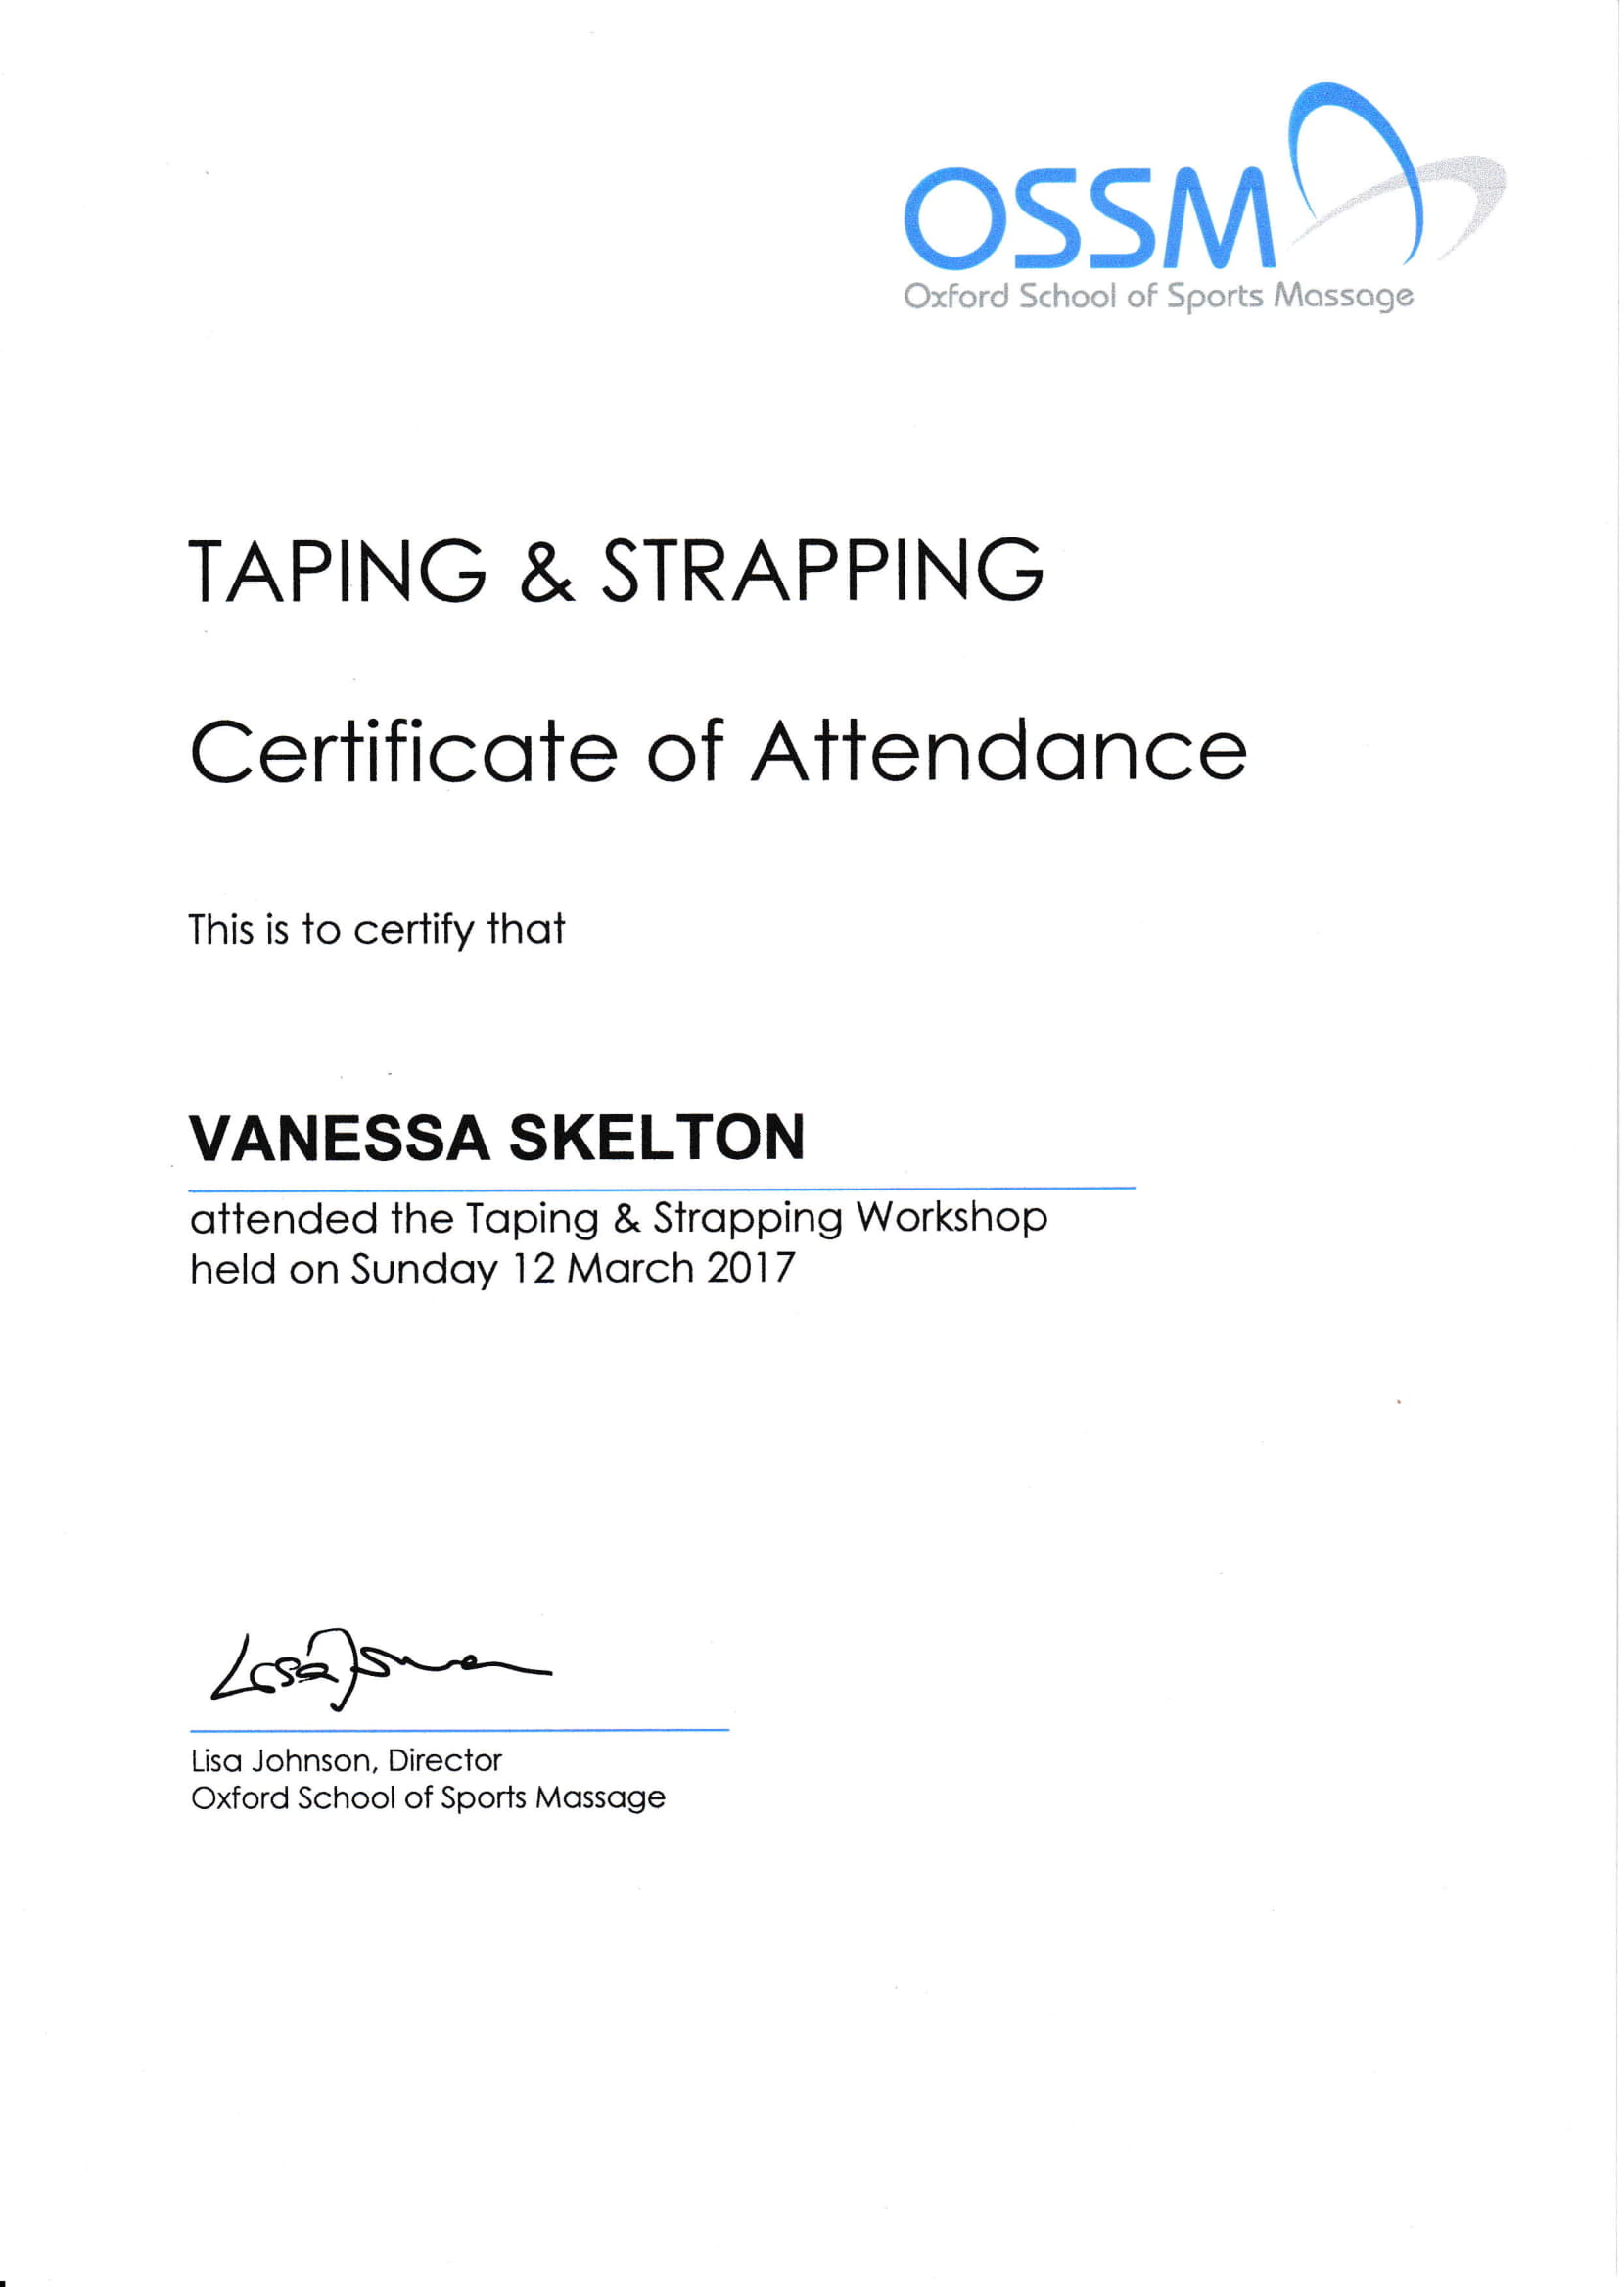 taping and strapping certificate 12.3.17-1.jpg